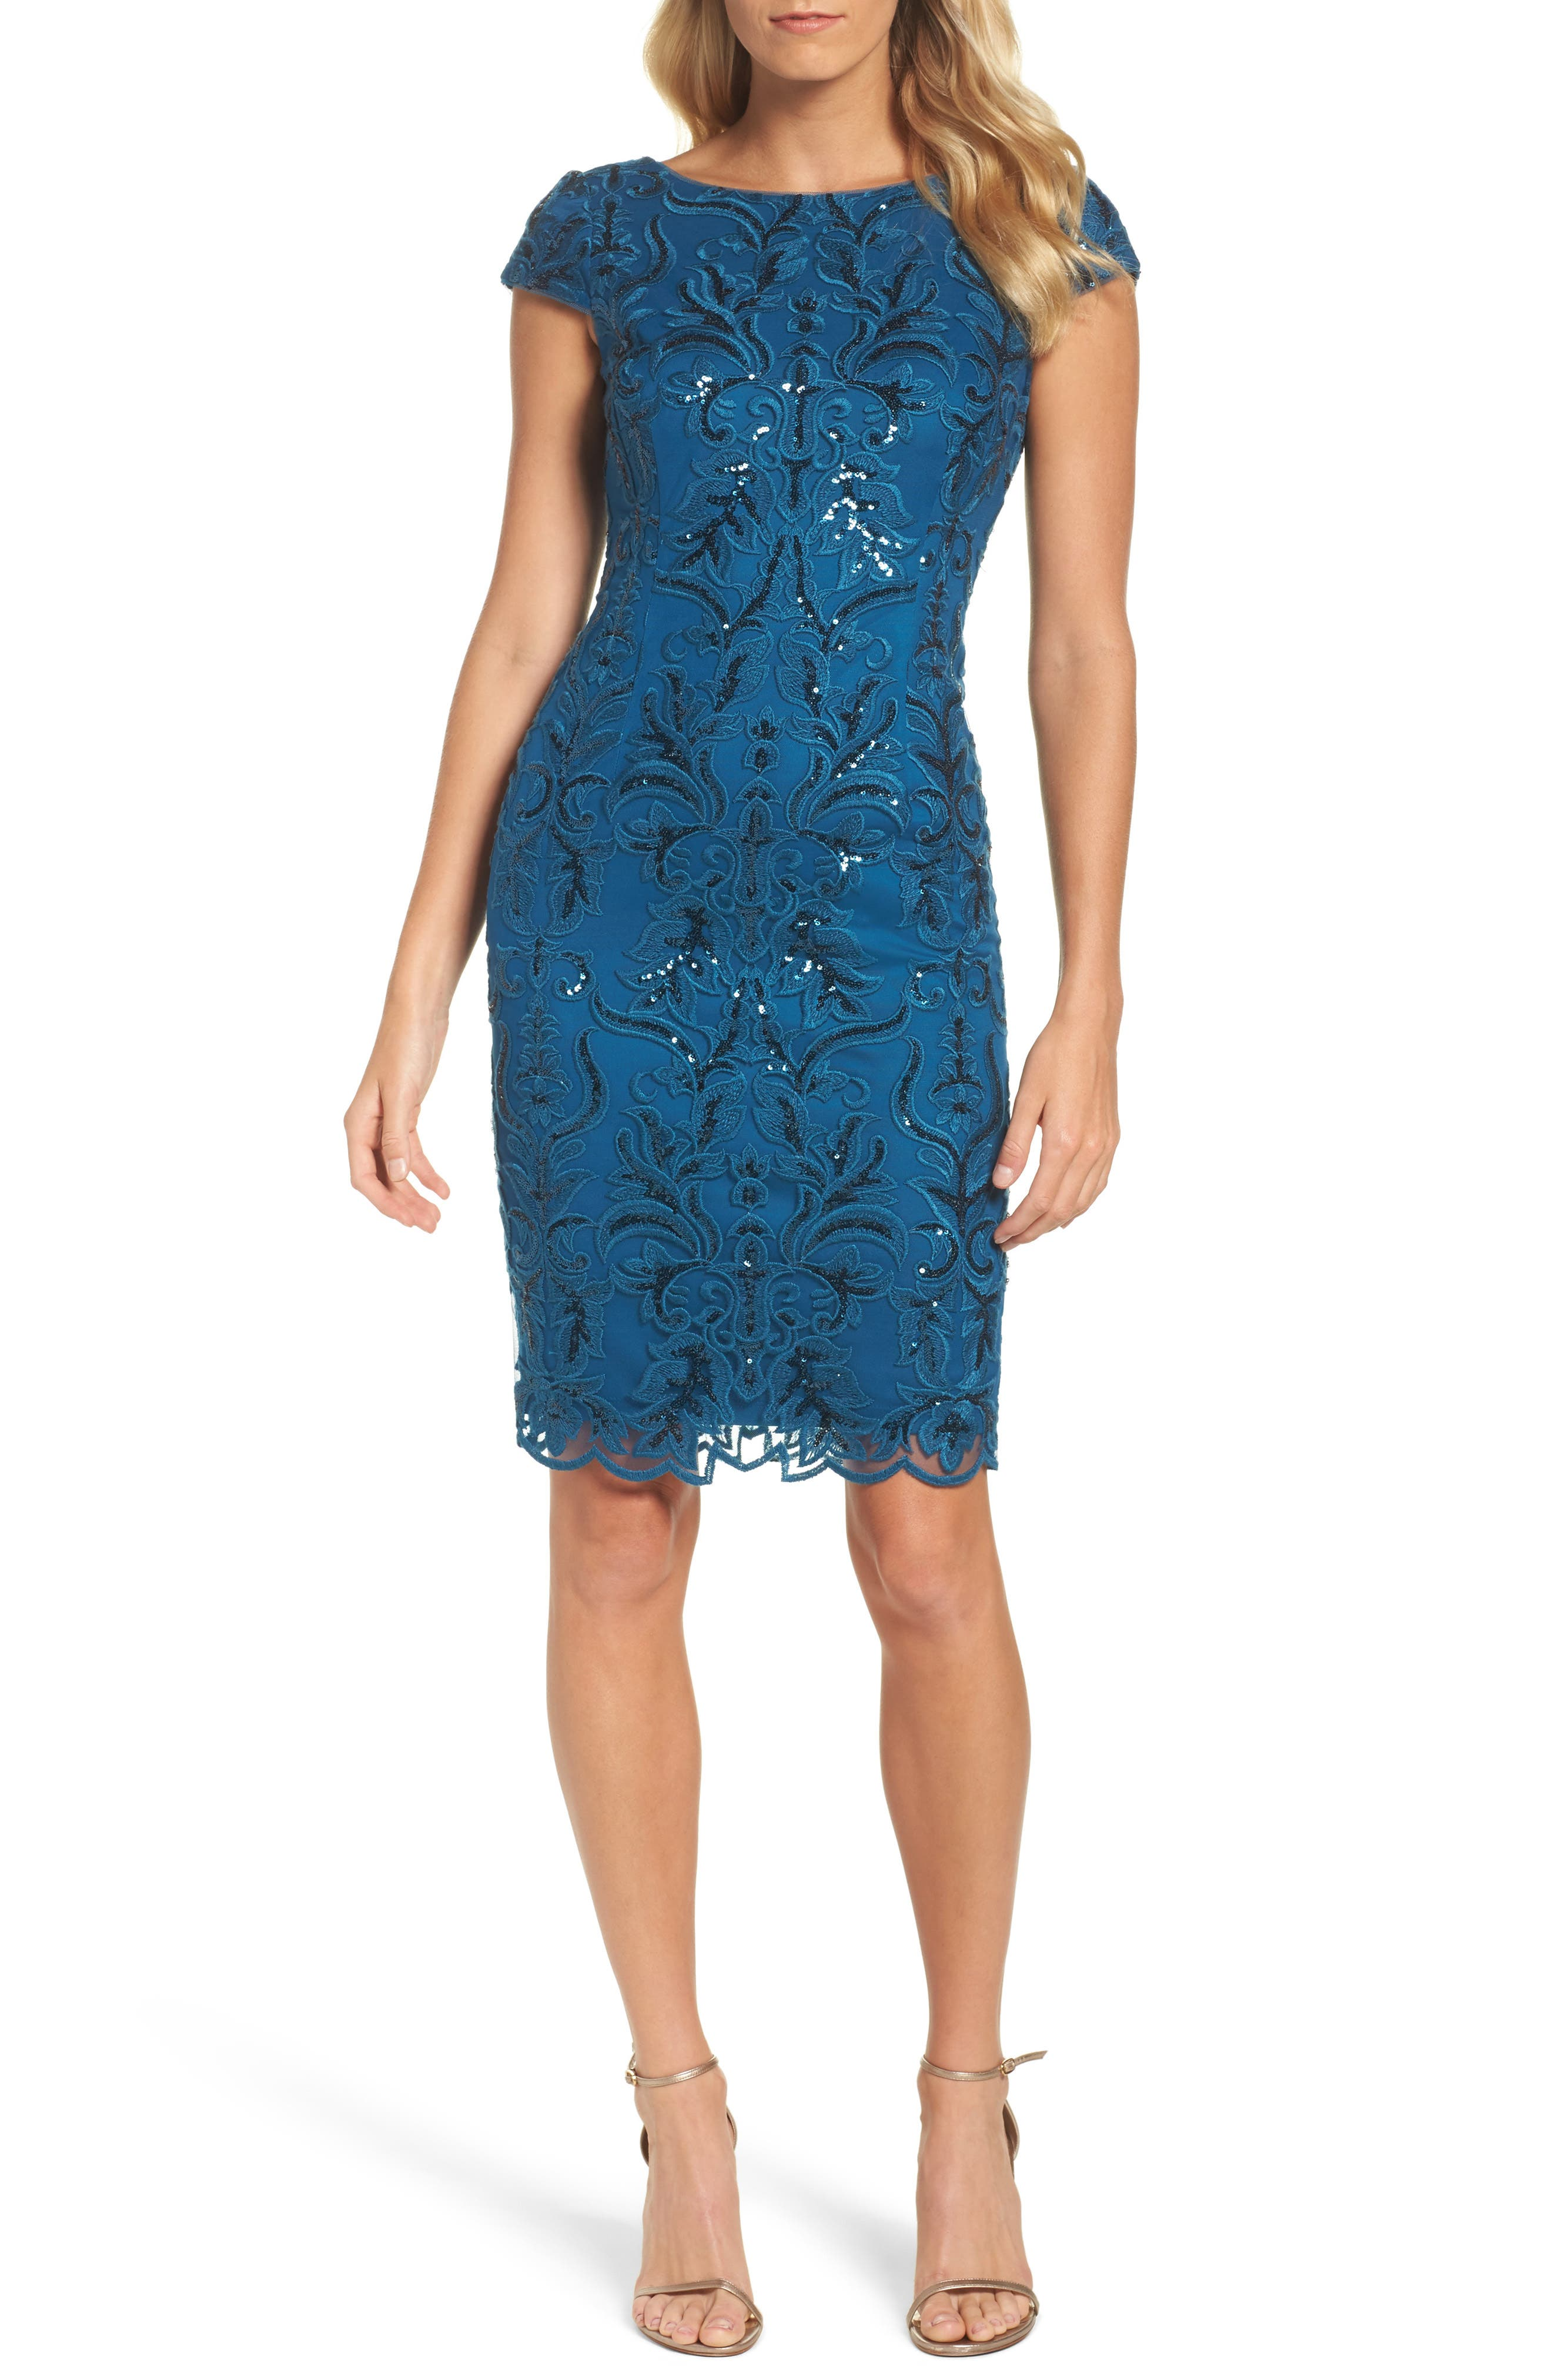 Adrianna Papell Sequin Embroidered Sheath Dress (Regular & Petite)